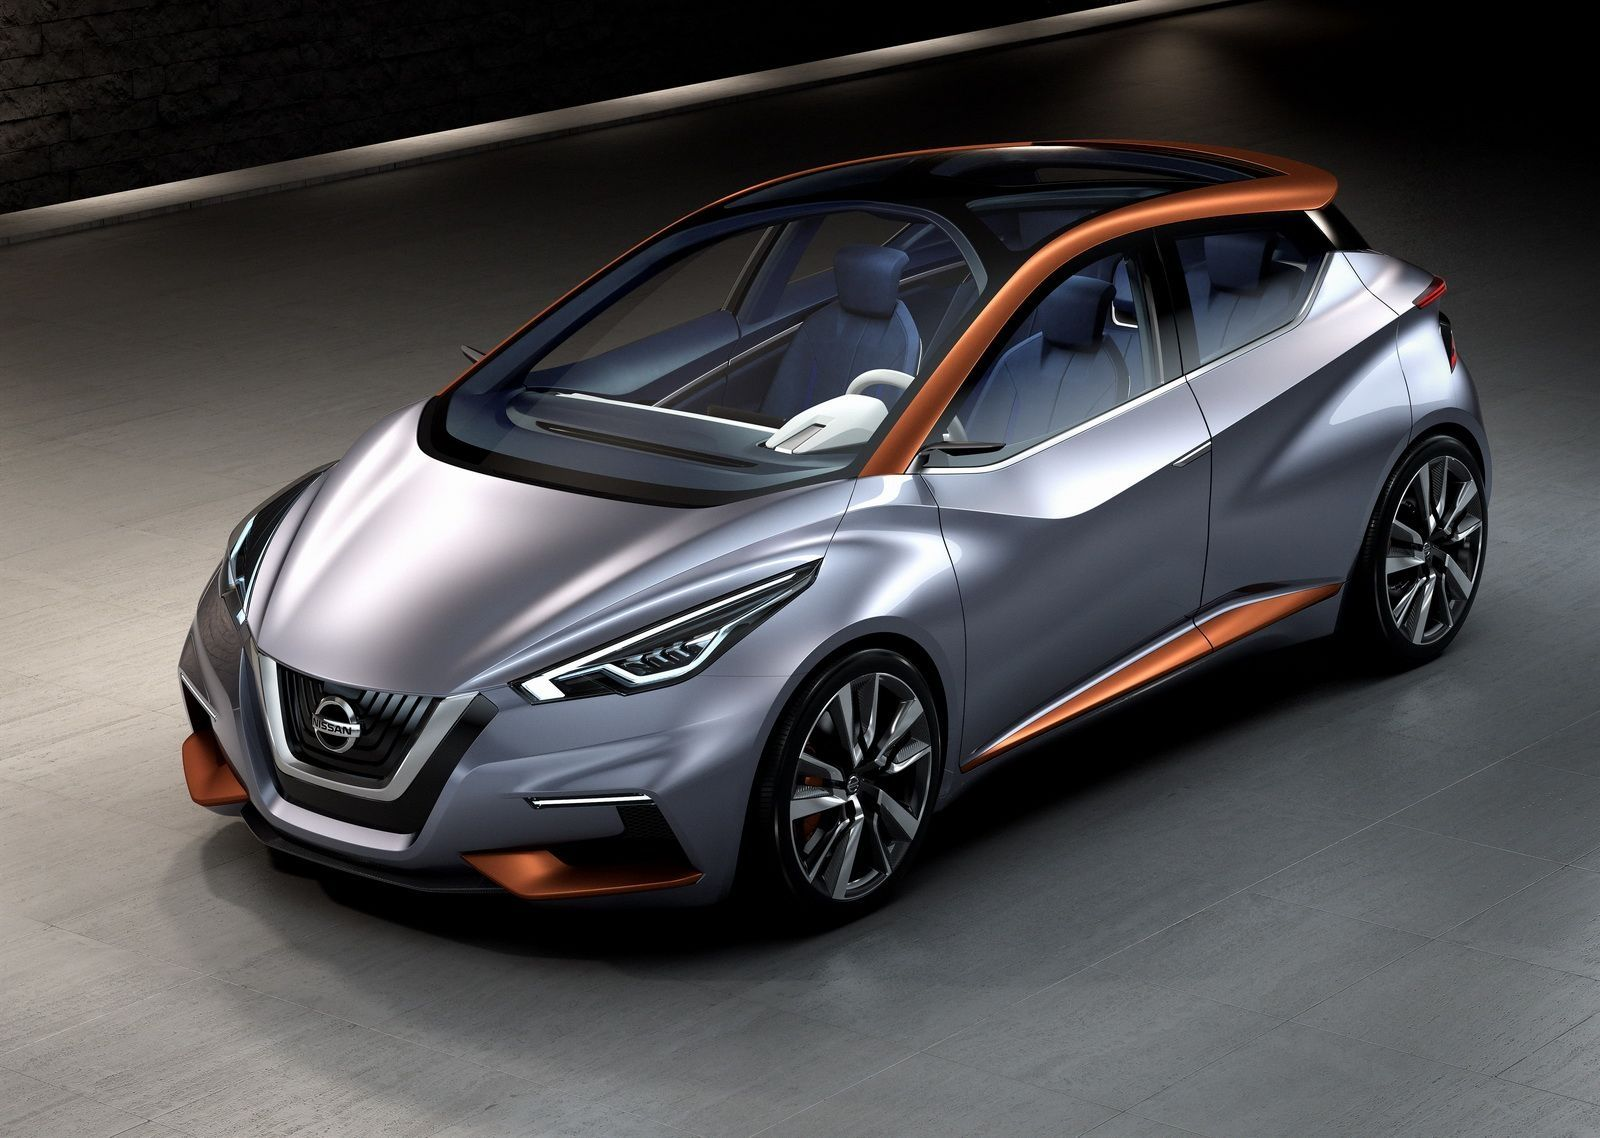 Best Nissan Micra 2020 Price And Review Car Price 2019 Concept Cars Nissan Nissan Qashqai